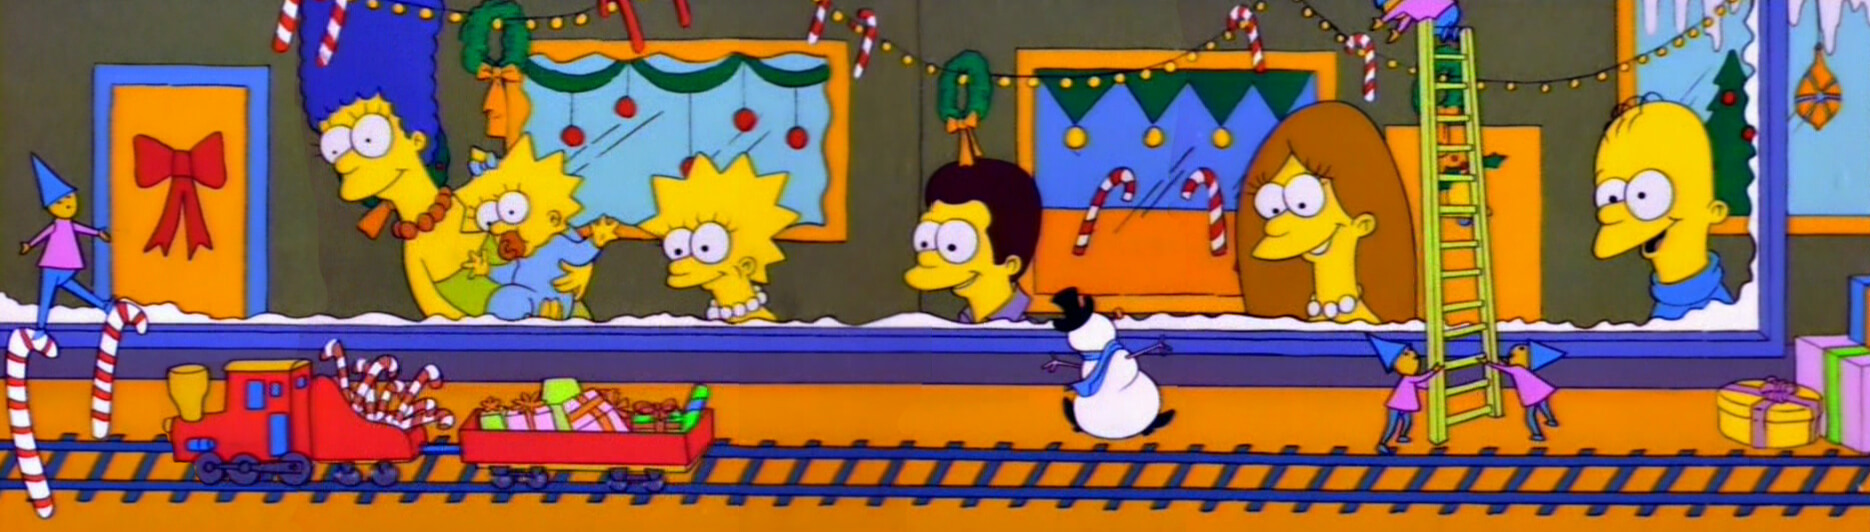 Simpsons-christmas-LARGE1